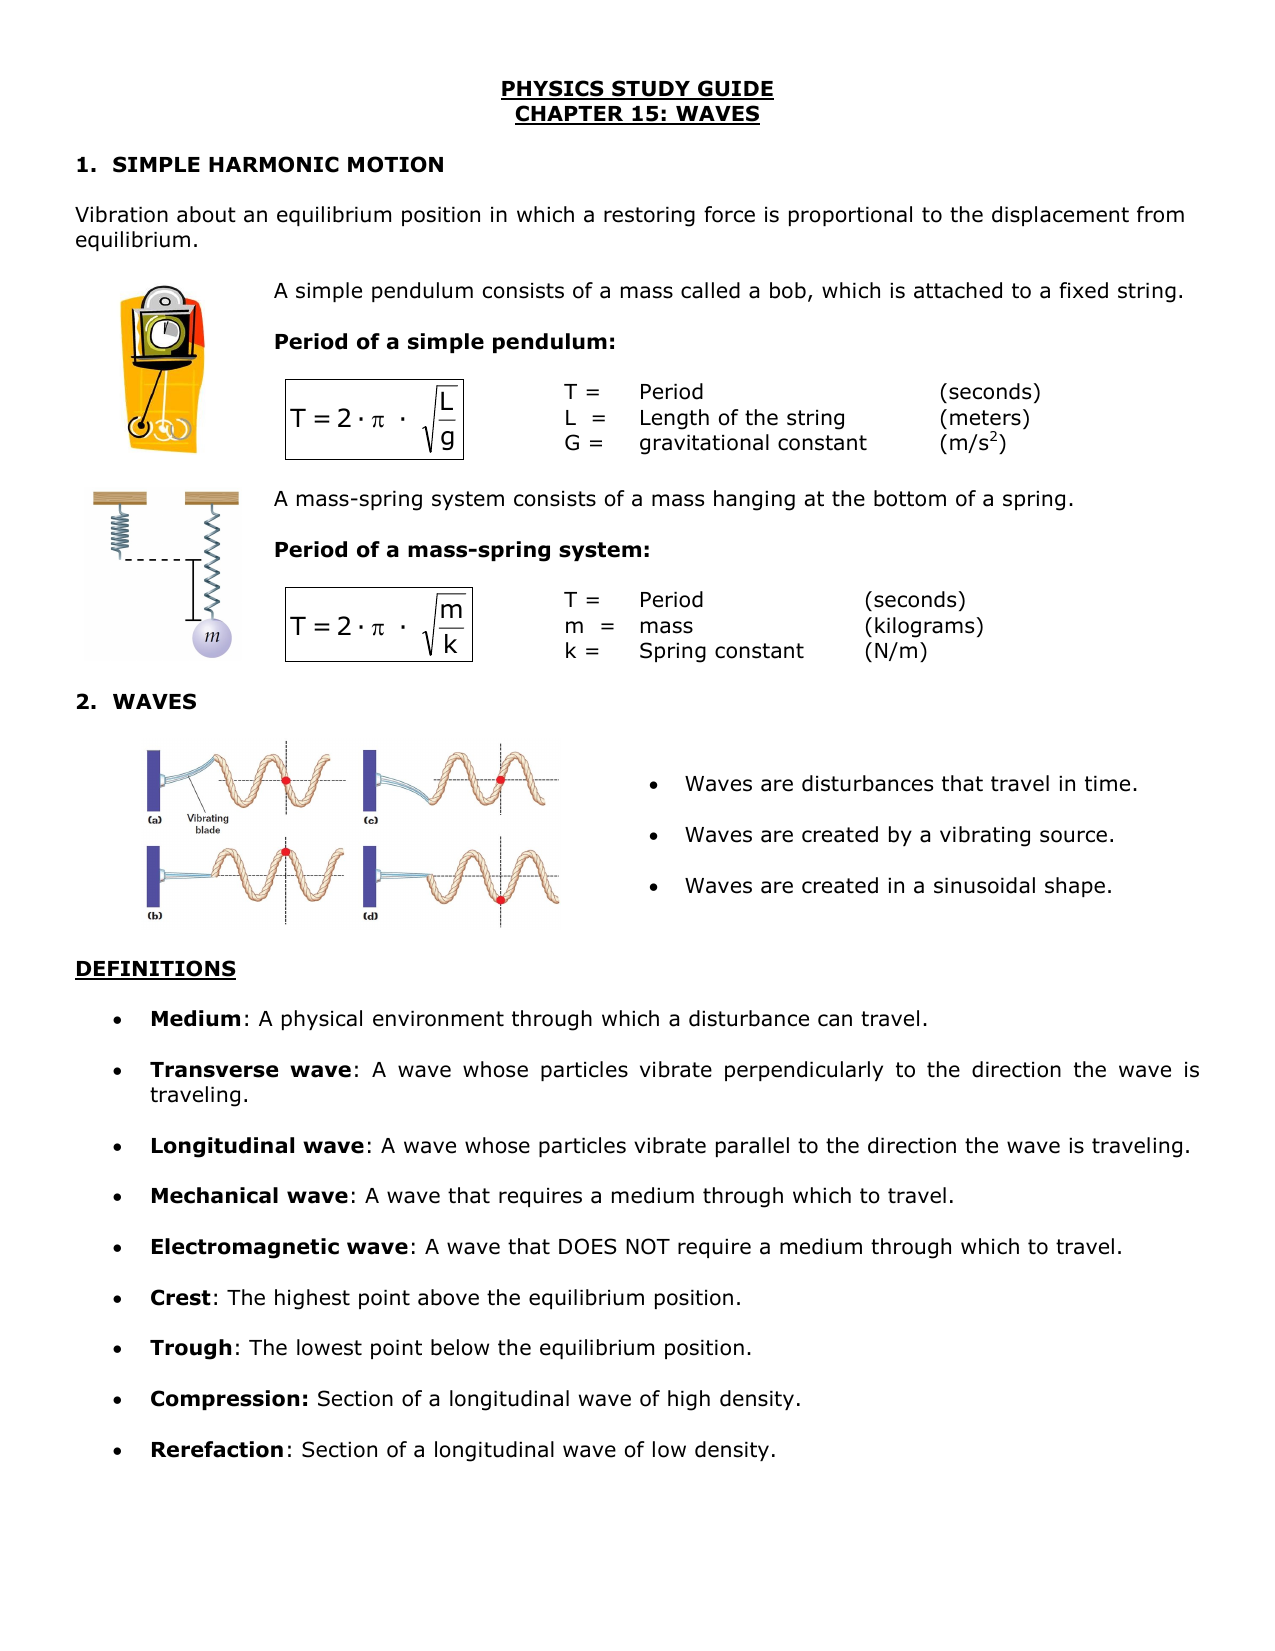 PHYSICS STUDY GUIDE CHAPTER 15: WAVES 1  SIMPLE HARMONIC MOTION